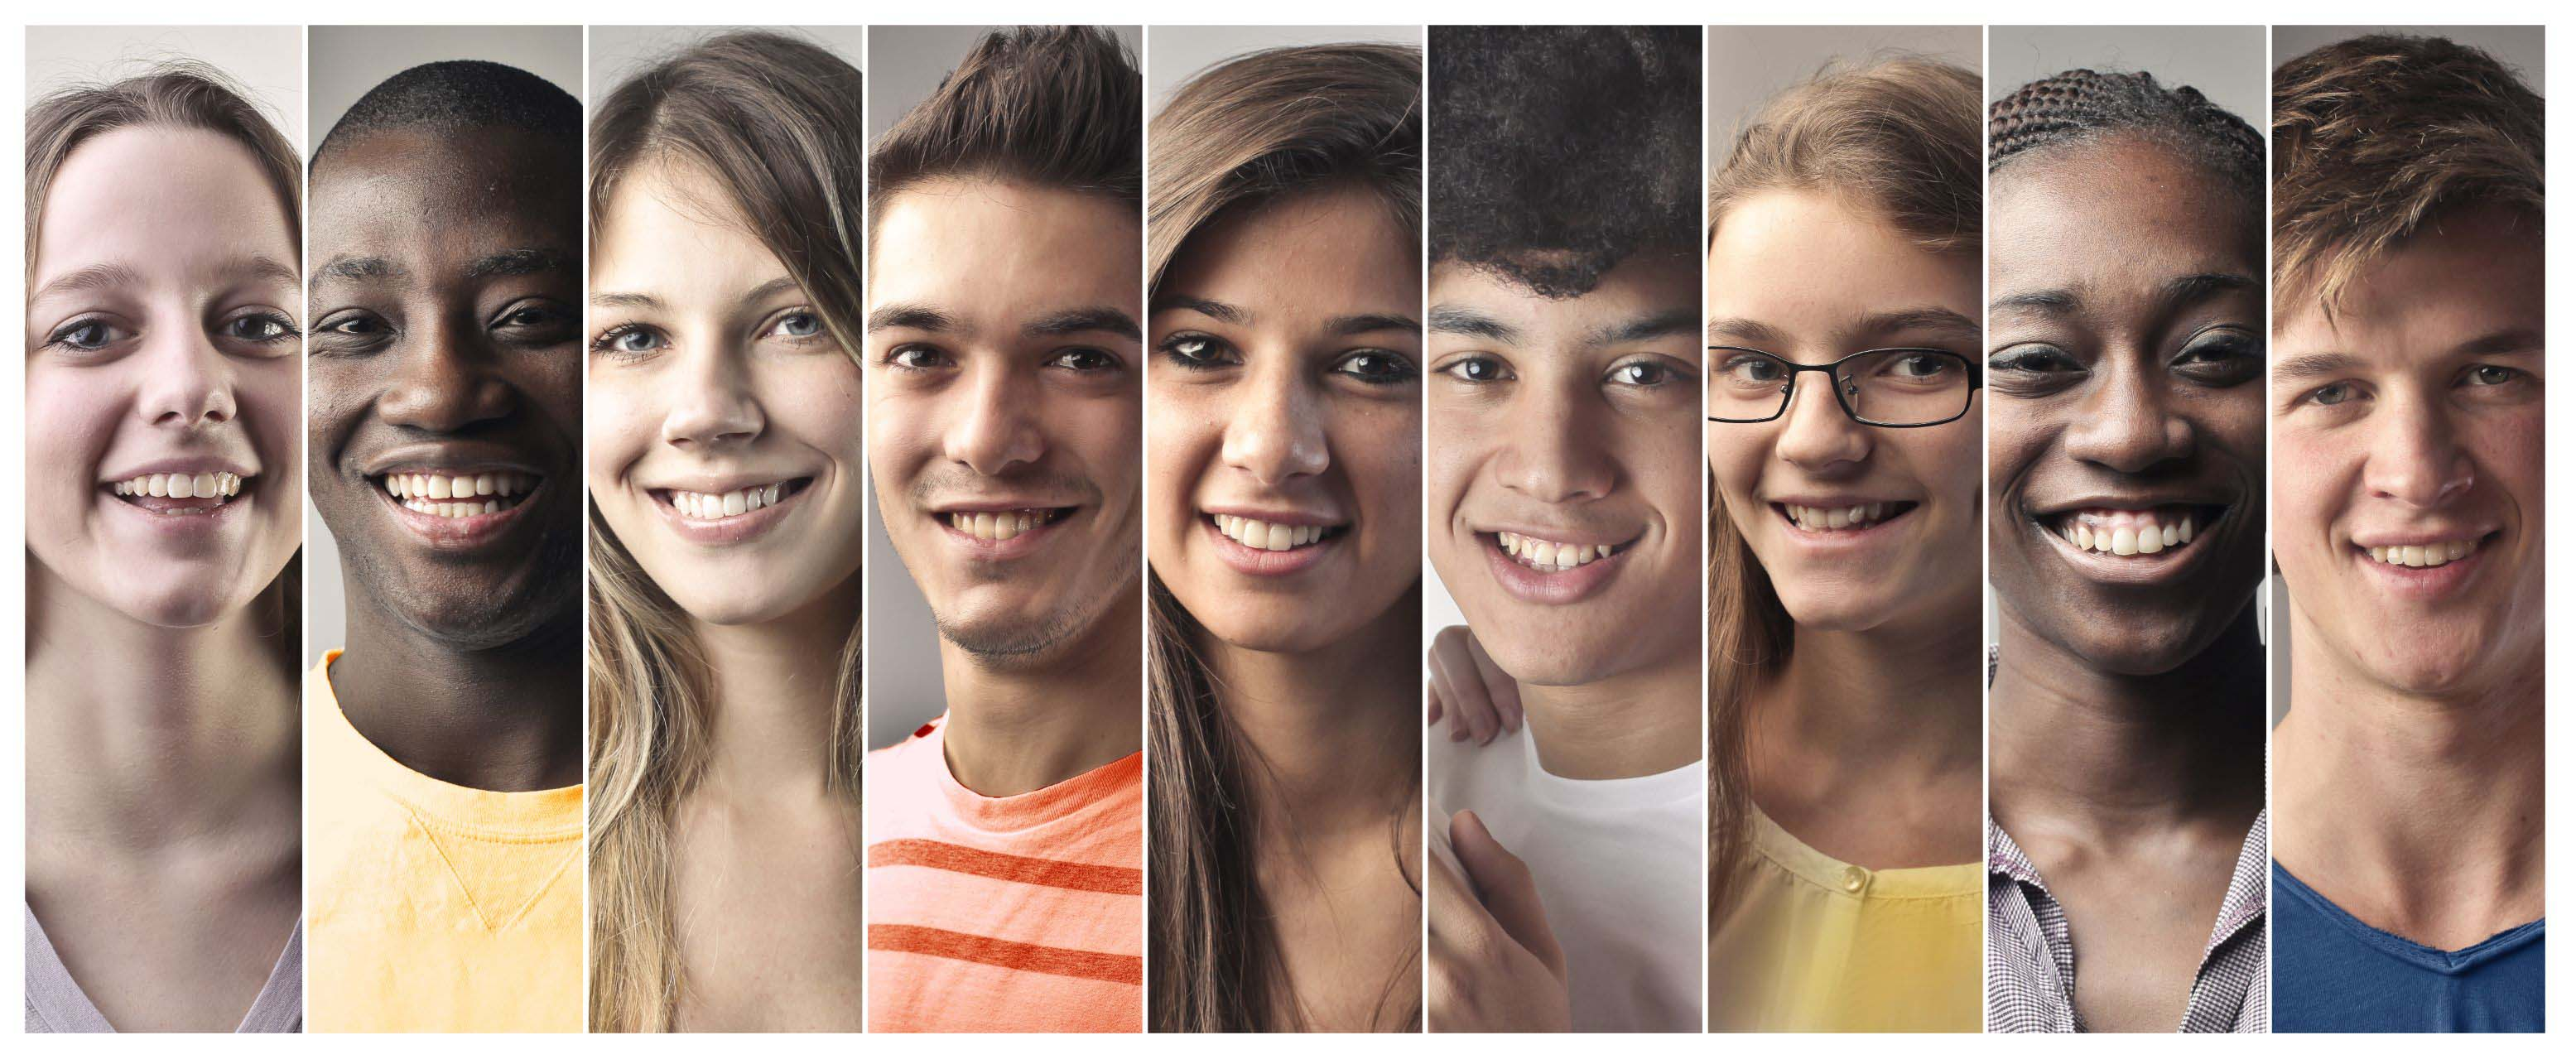 Collage showing 9 young adults of diverse races and genders